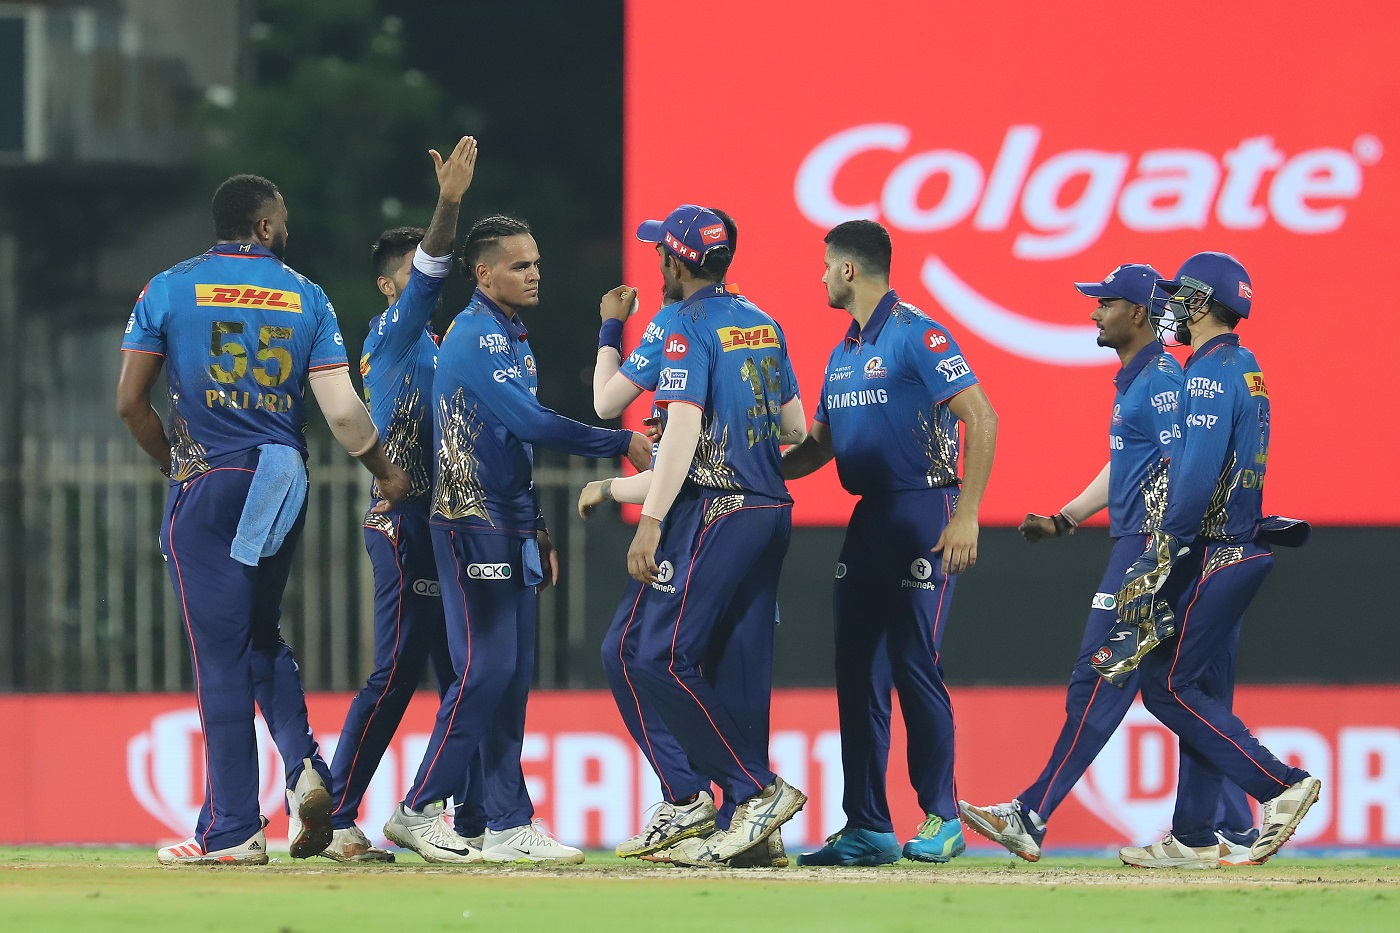 MI have a tough task to counter a rampaging CSK team | BCCI-IPL